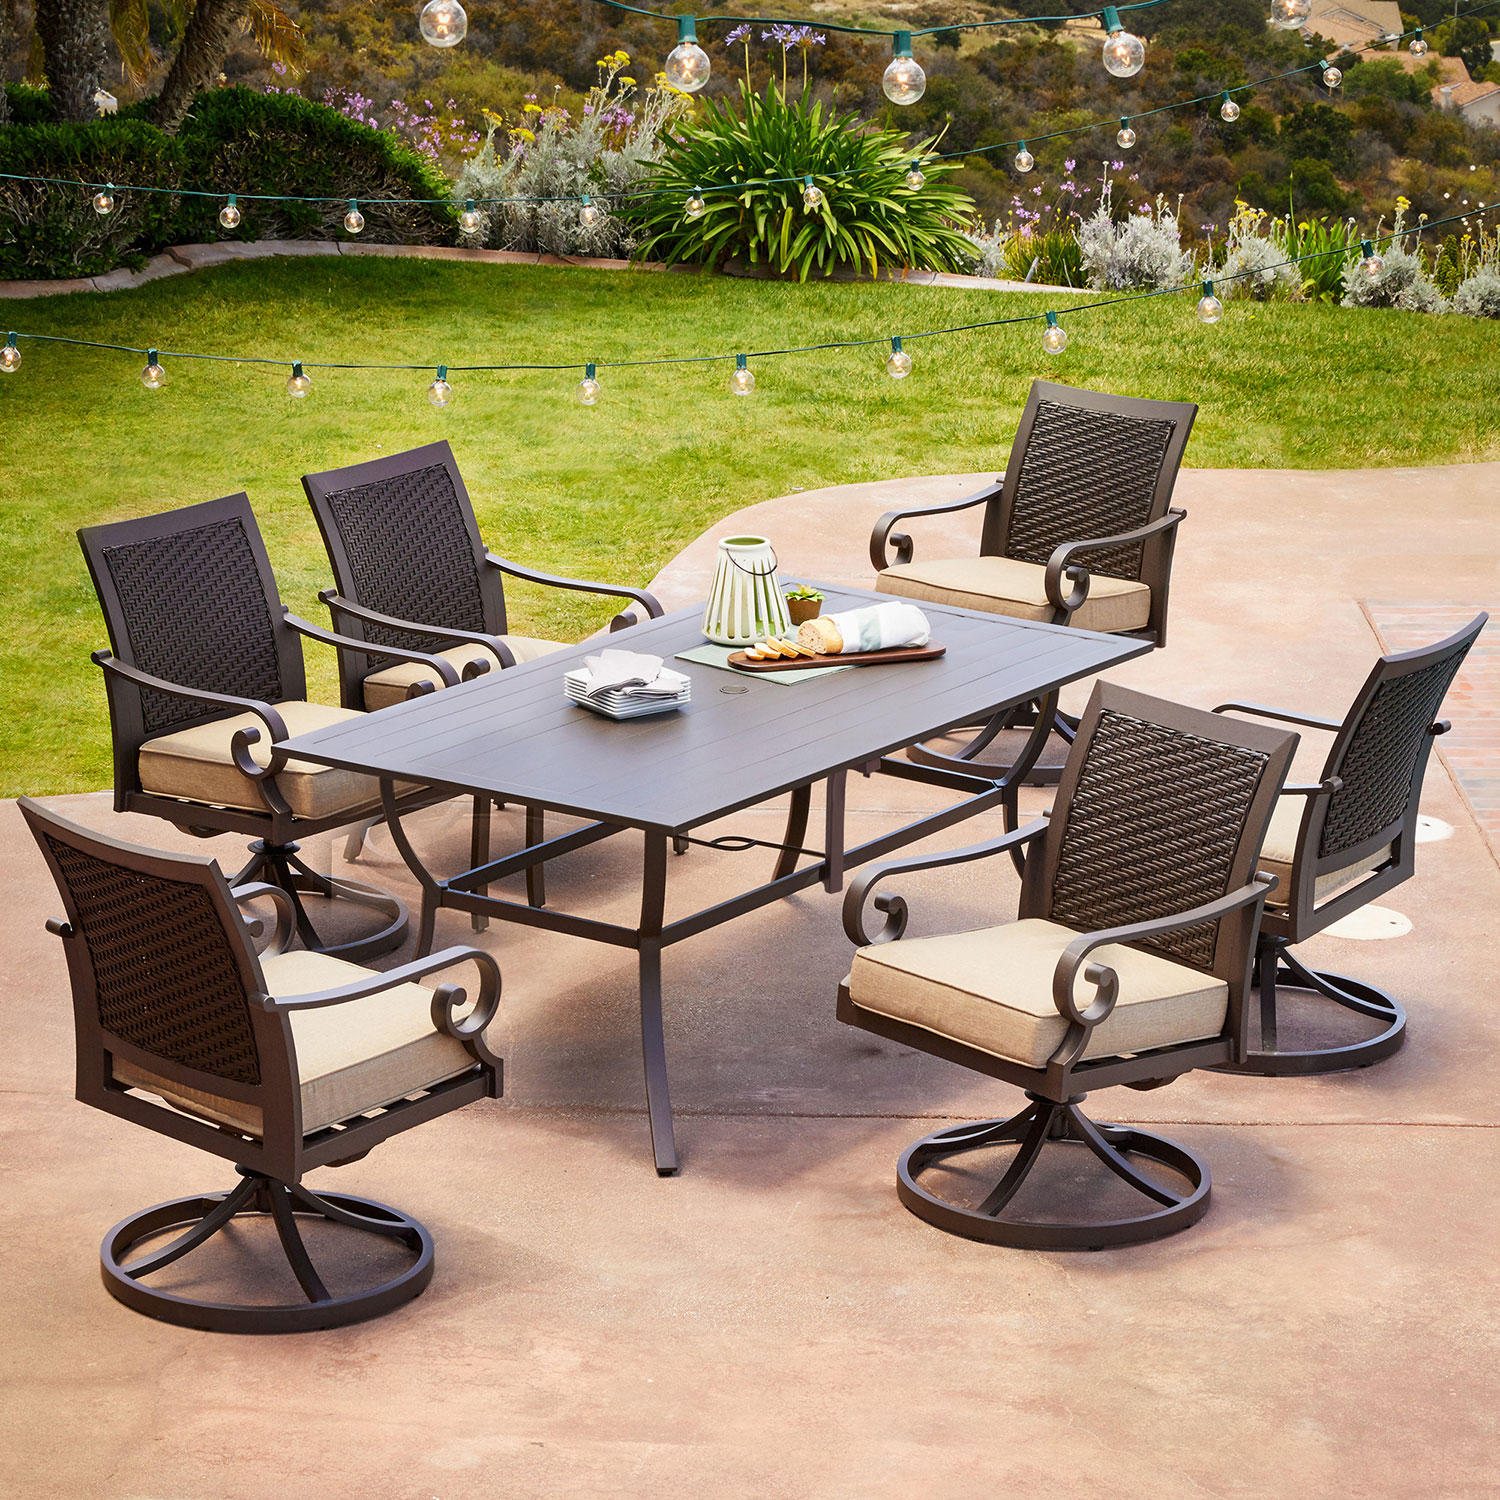 7-Piece Royal Garden Monte Carlo Patio Dining Set With Chairs (Various Colors)